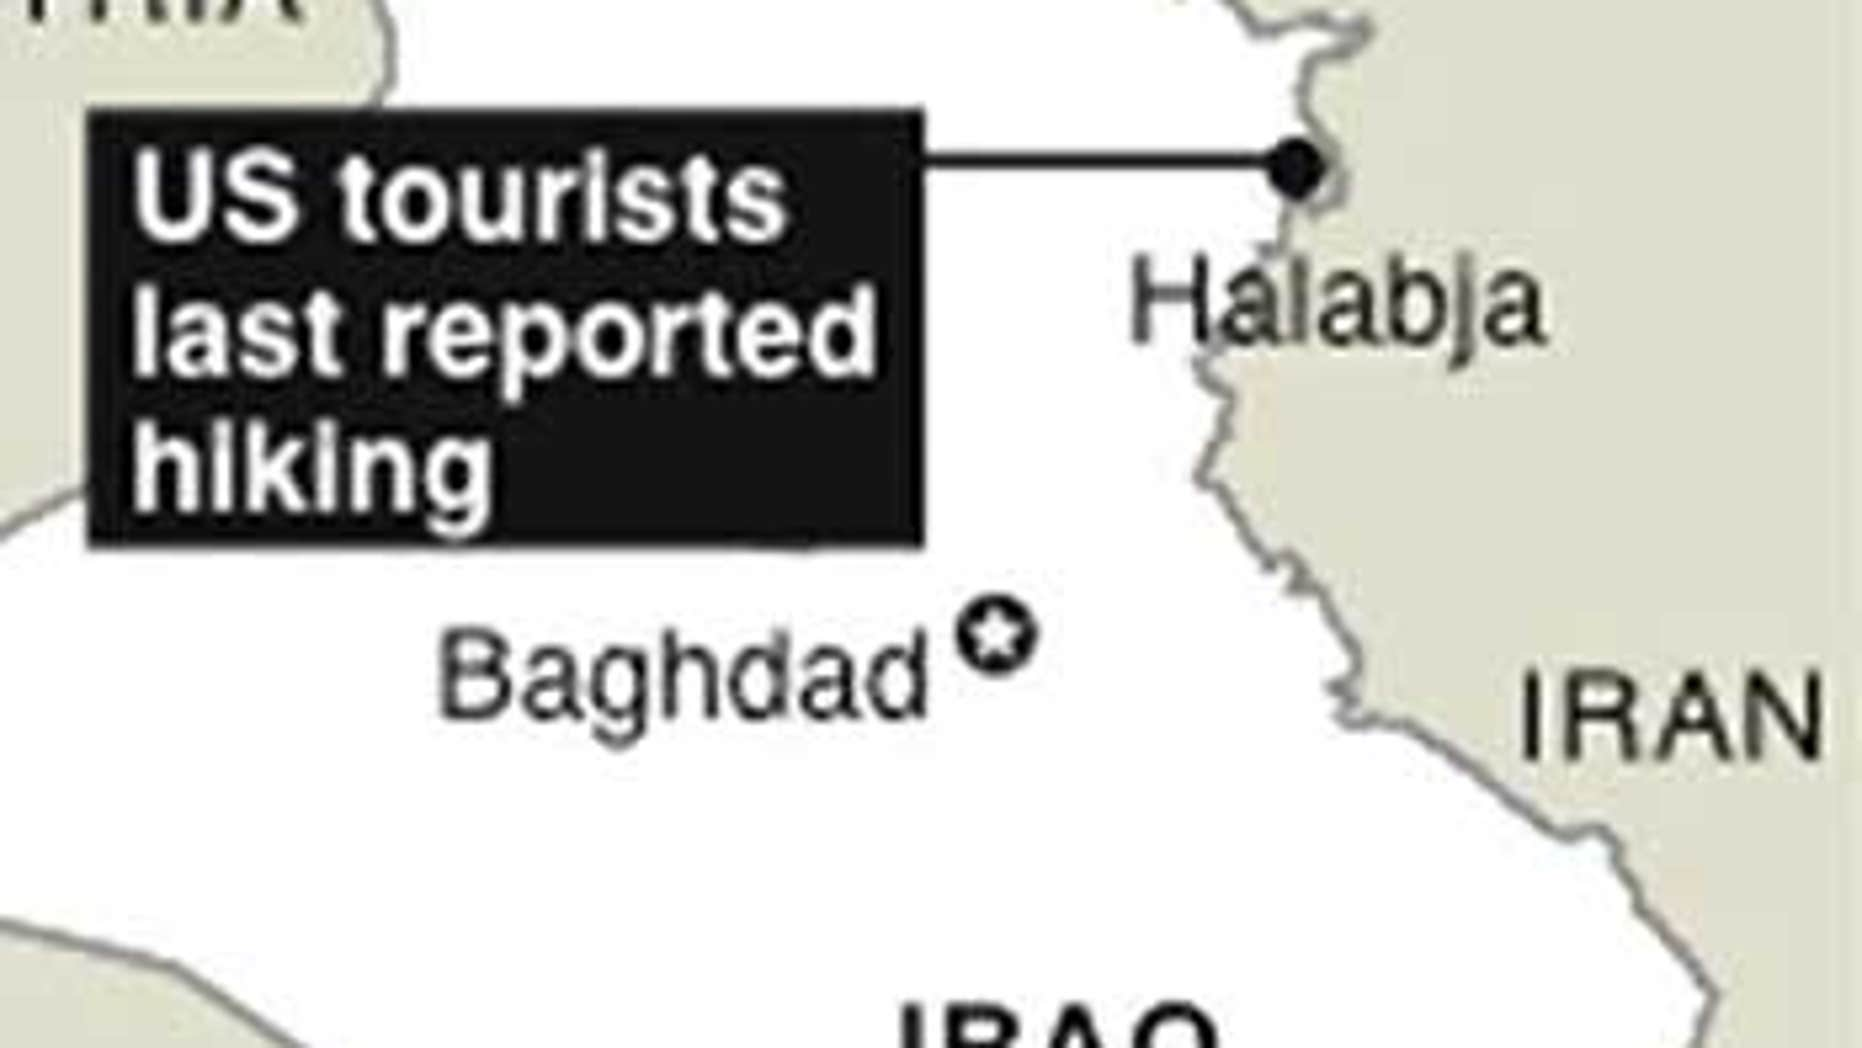 Map locates Halabja, Iraq, where US tourists last reported hiking.